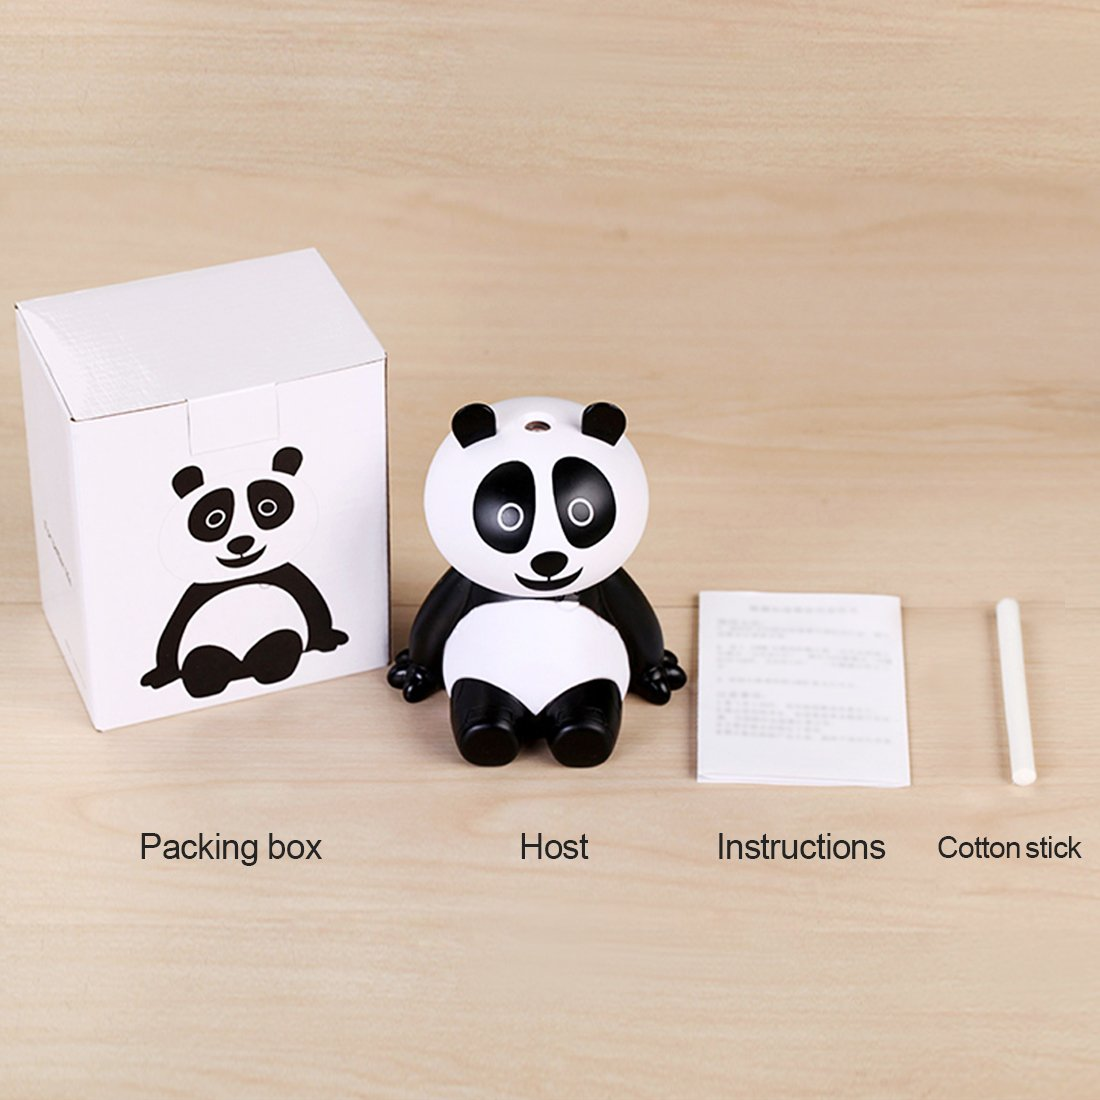 Roowo Panda car diffuser , Aroma mini Essential Cool Oil Diffuser with Waterless Auto Shut-off, for Office ,Bedroom ,Living Room, Yoga Spa,Gift.